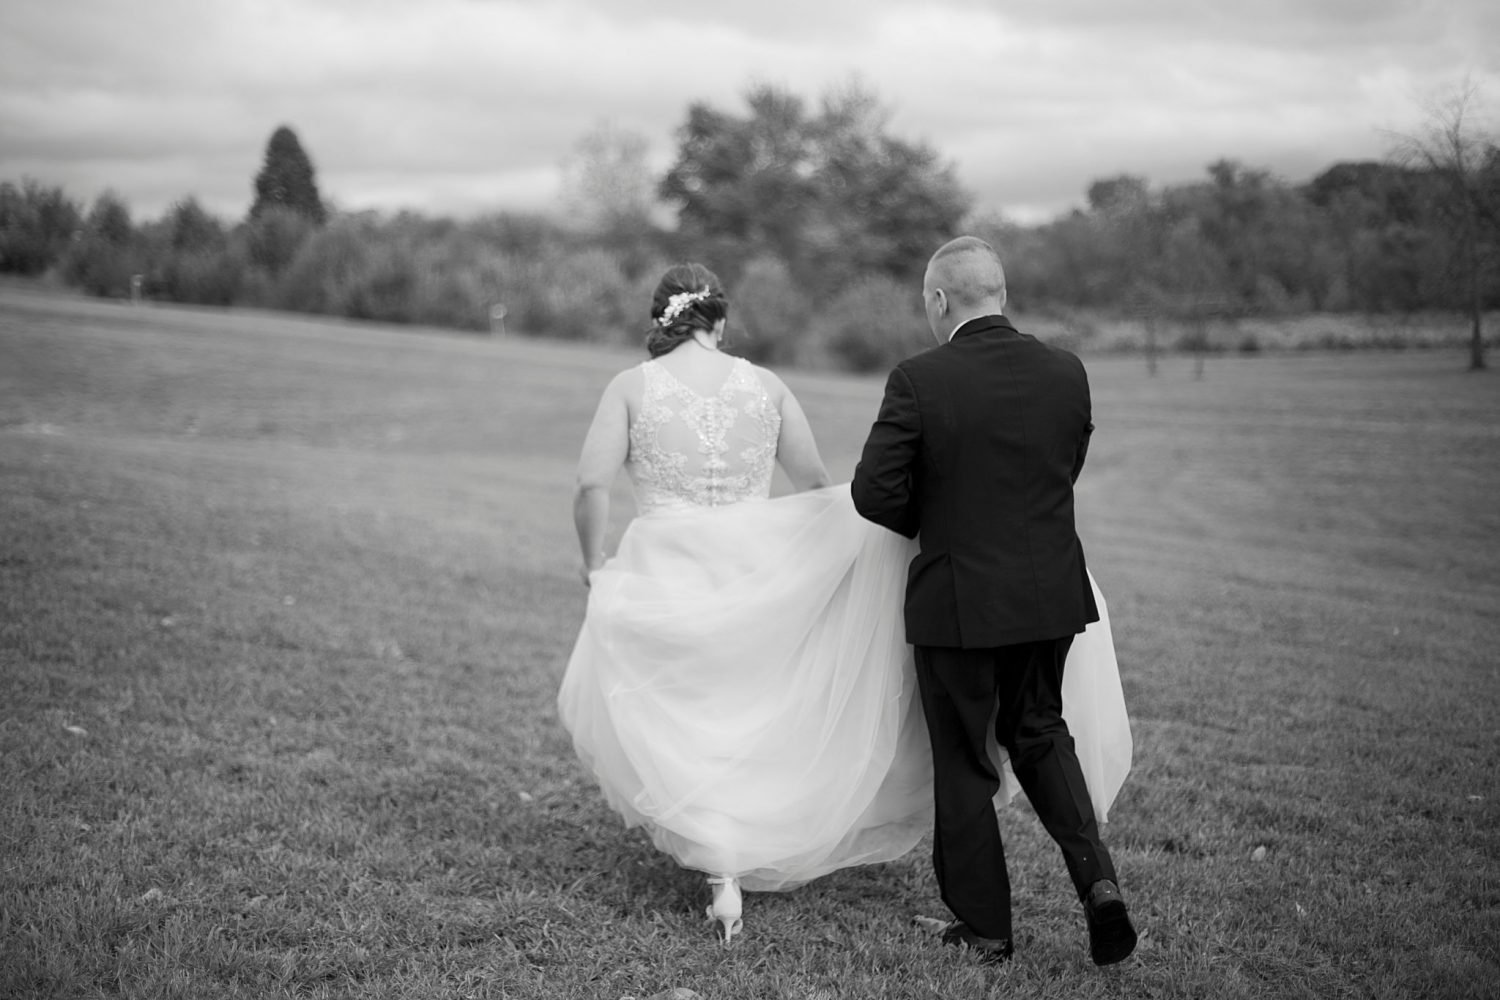 Black and white image of the groom carrying the bride's train as they walk through the grass with their backs to the camera. The orchard is in the background.